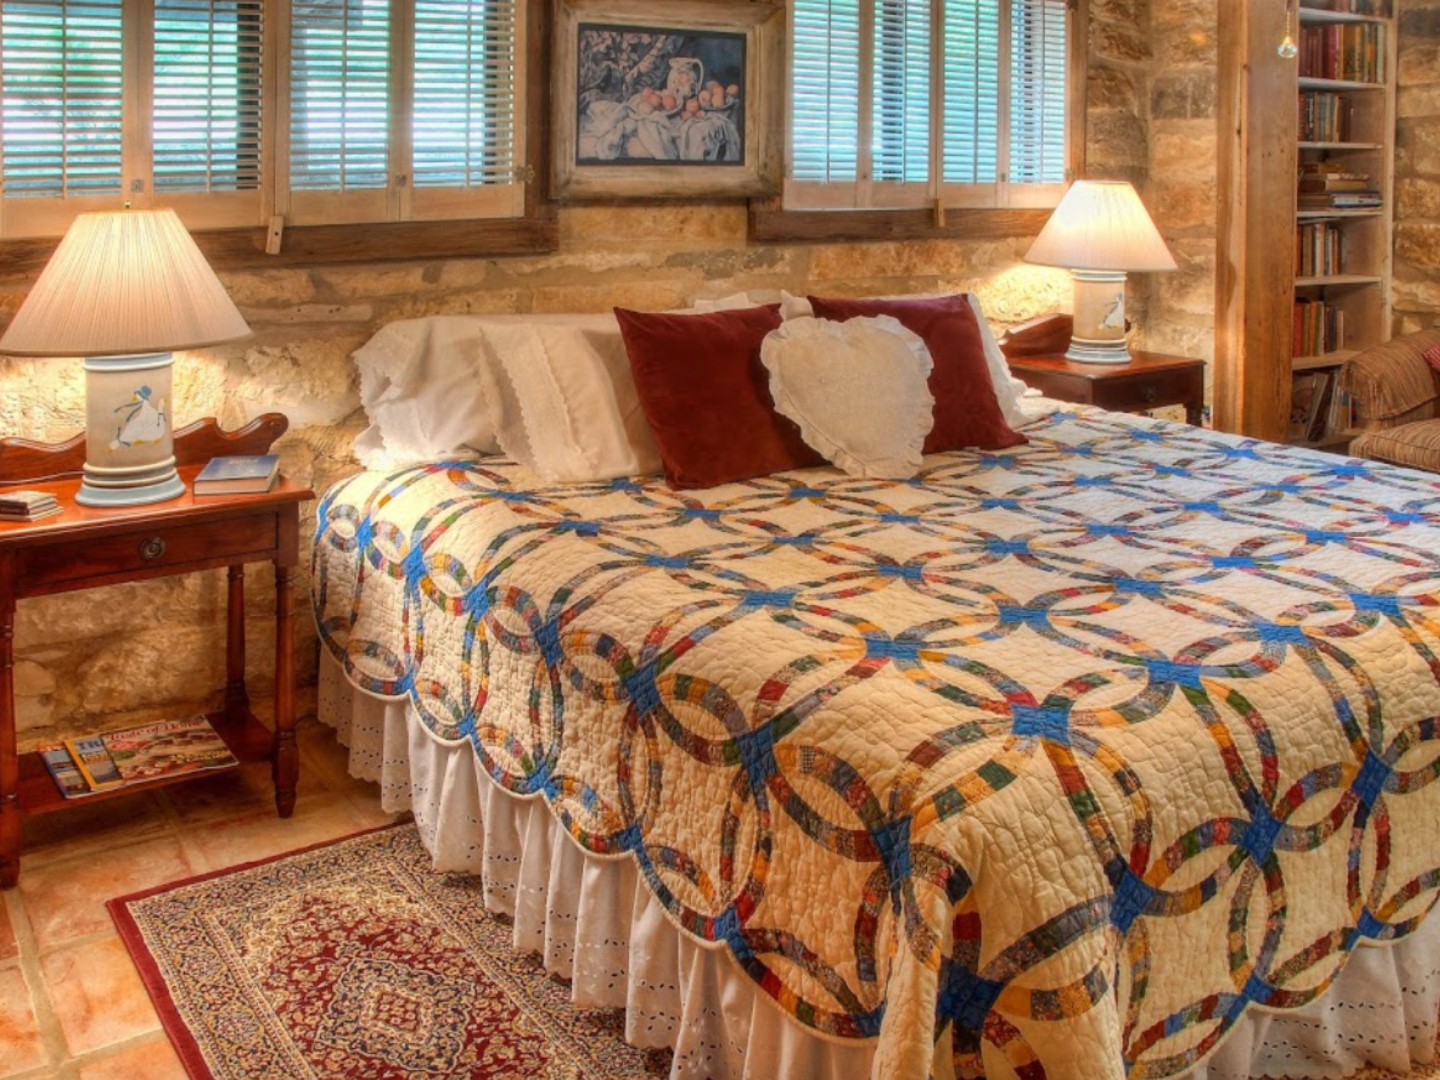 A bedroom with a large bed in a room at Historic Kuebler Waldrip Haus B&B .